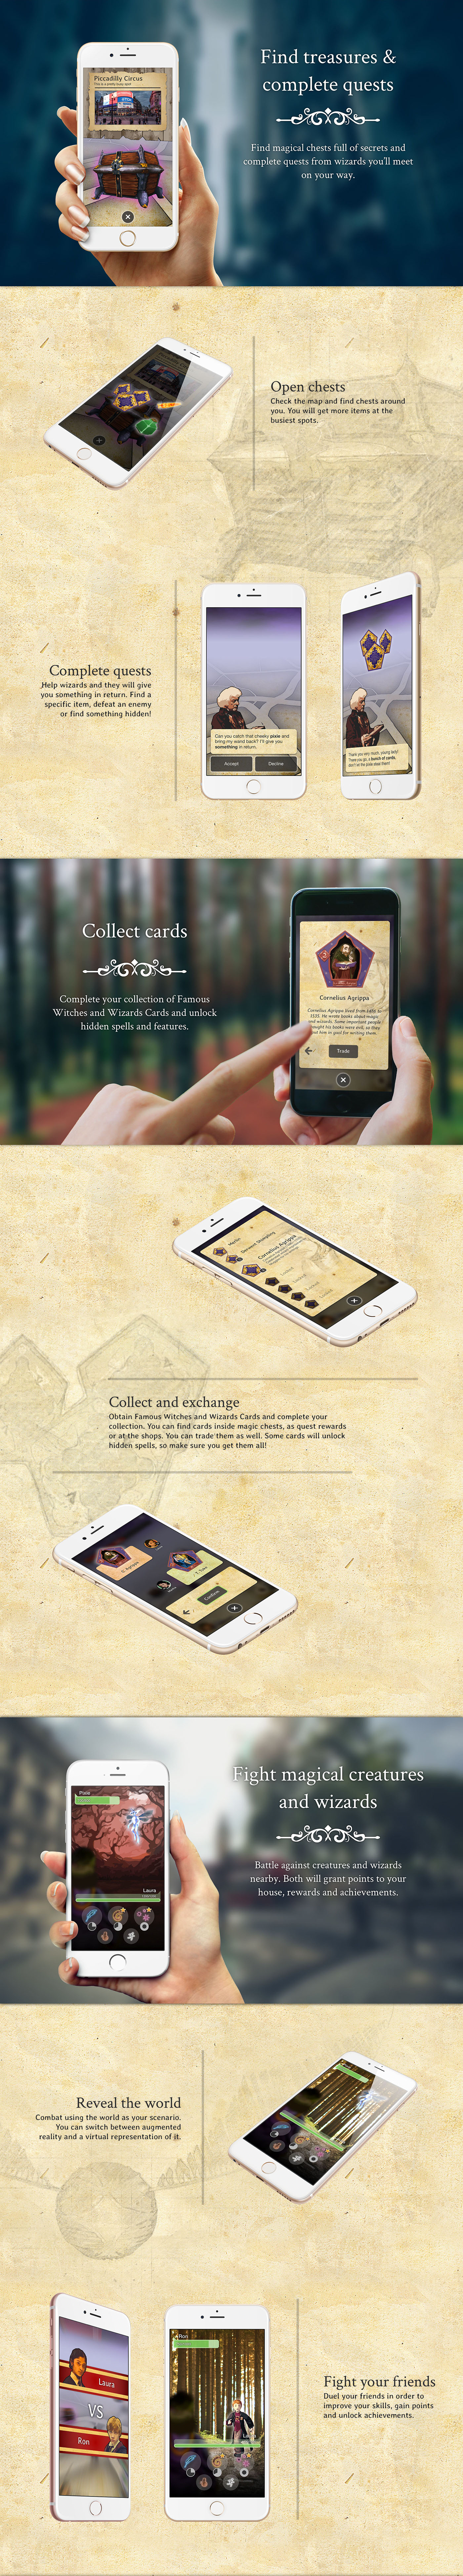 harry potter harry potter pokemon go Pokemon go augmented reality augmented reality redesign